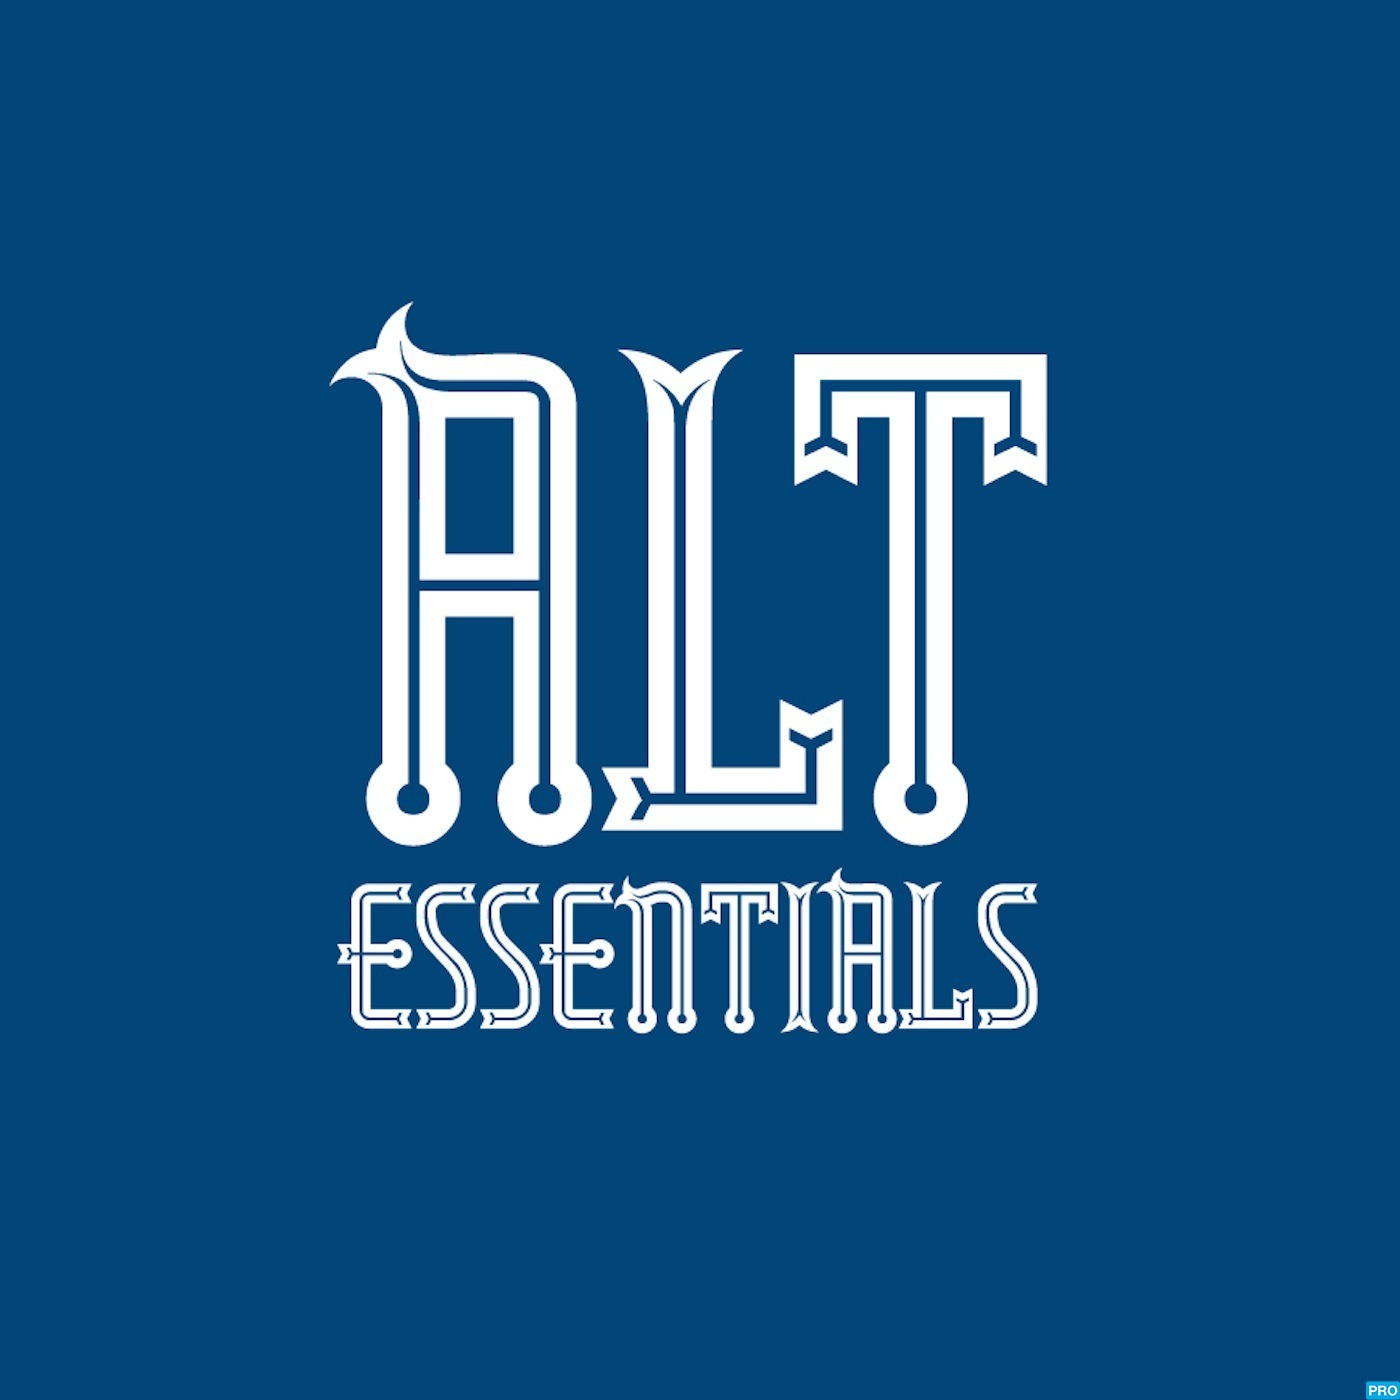 Alt Essentials